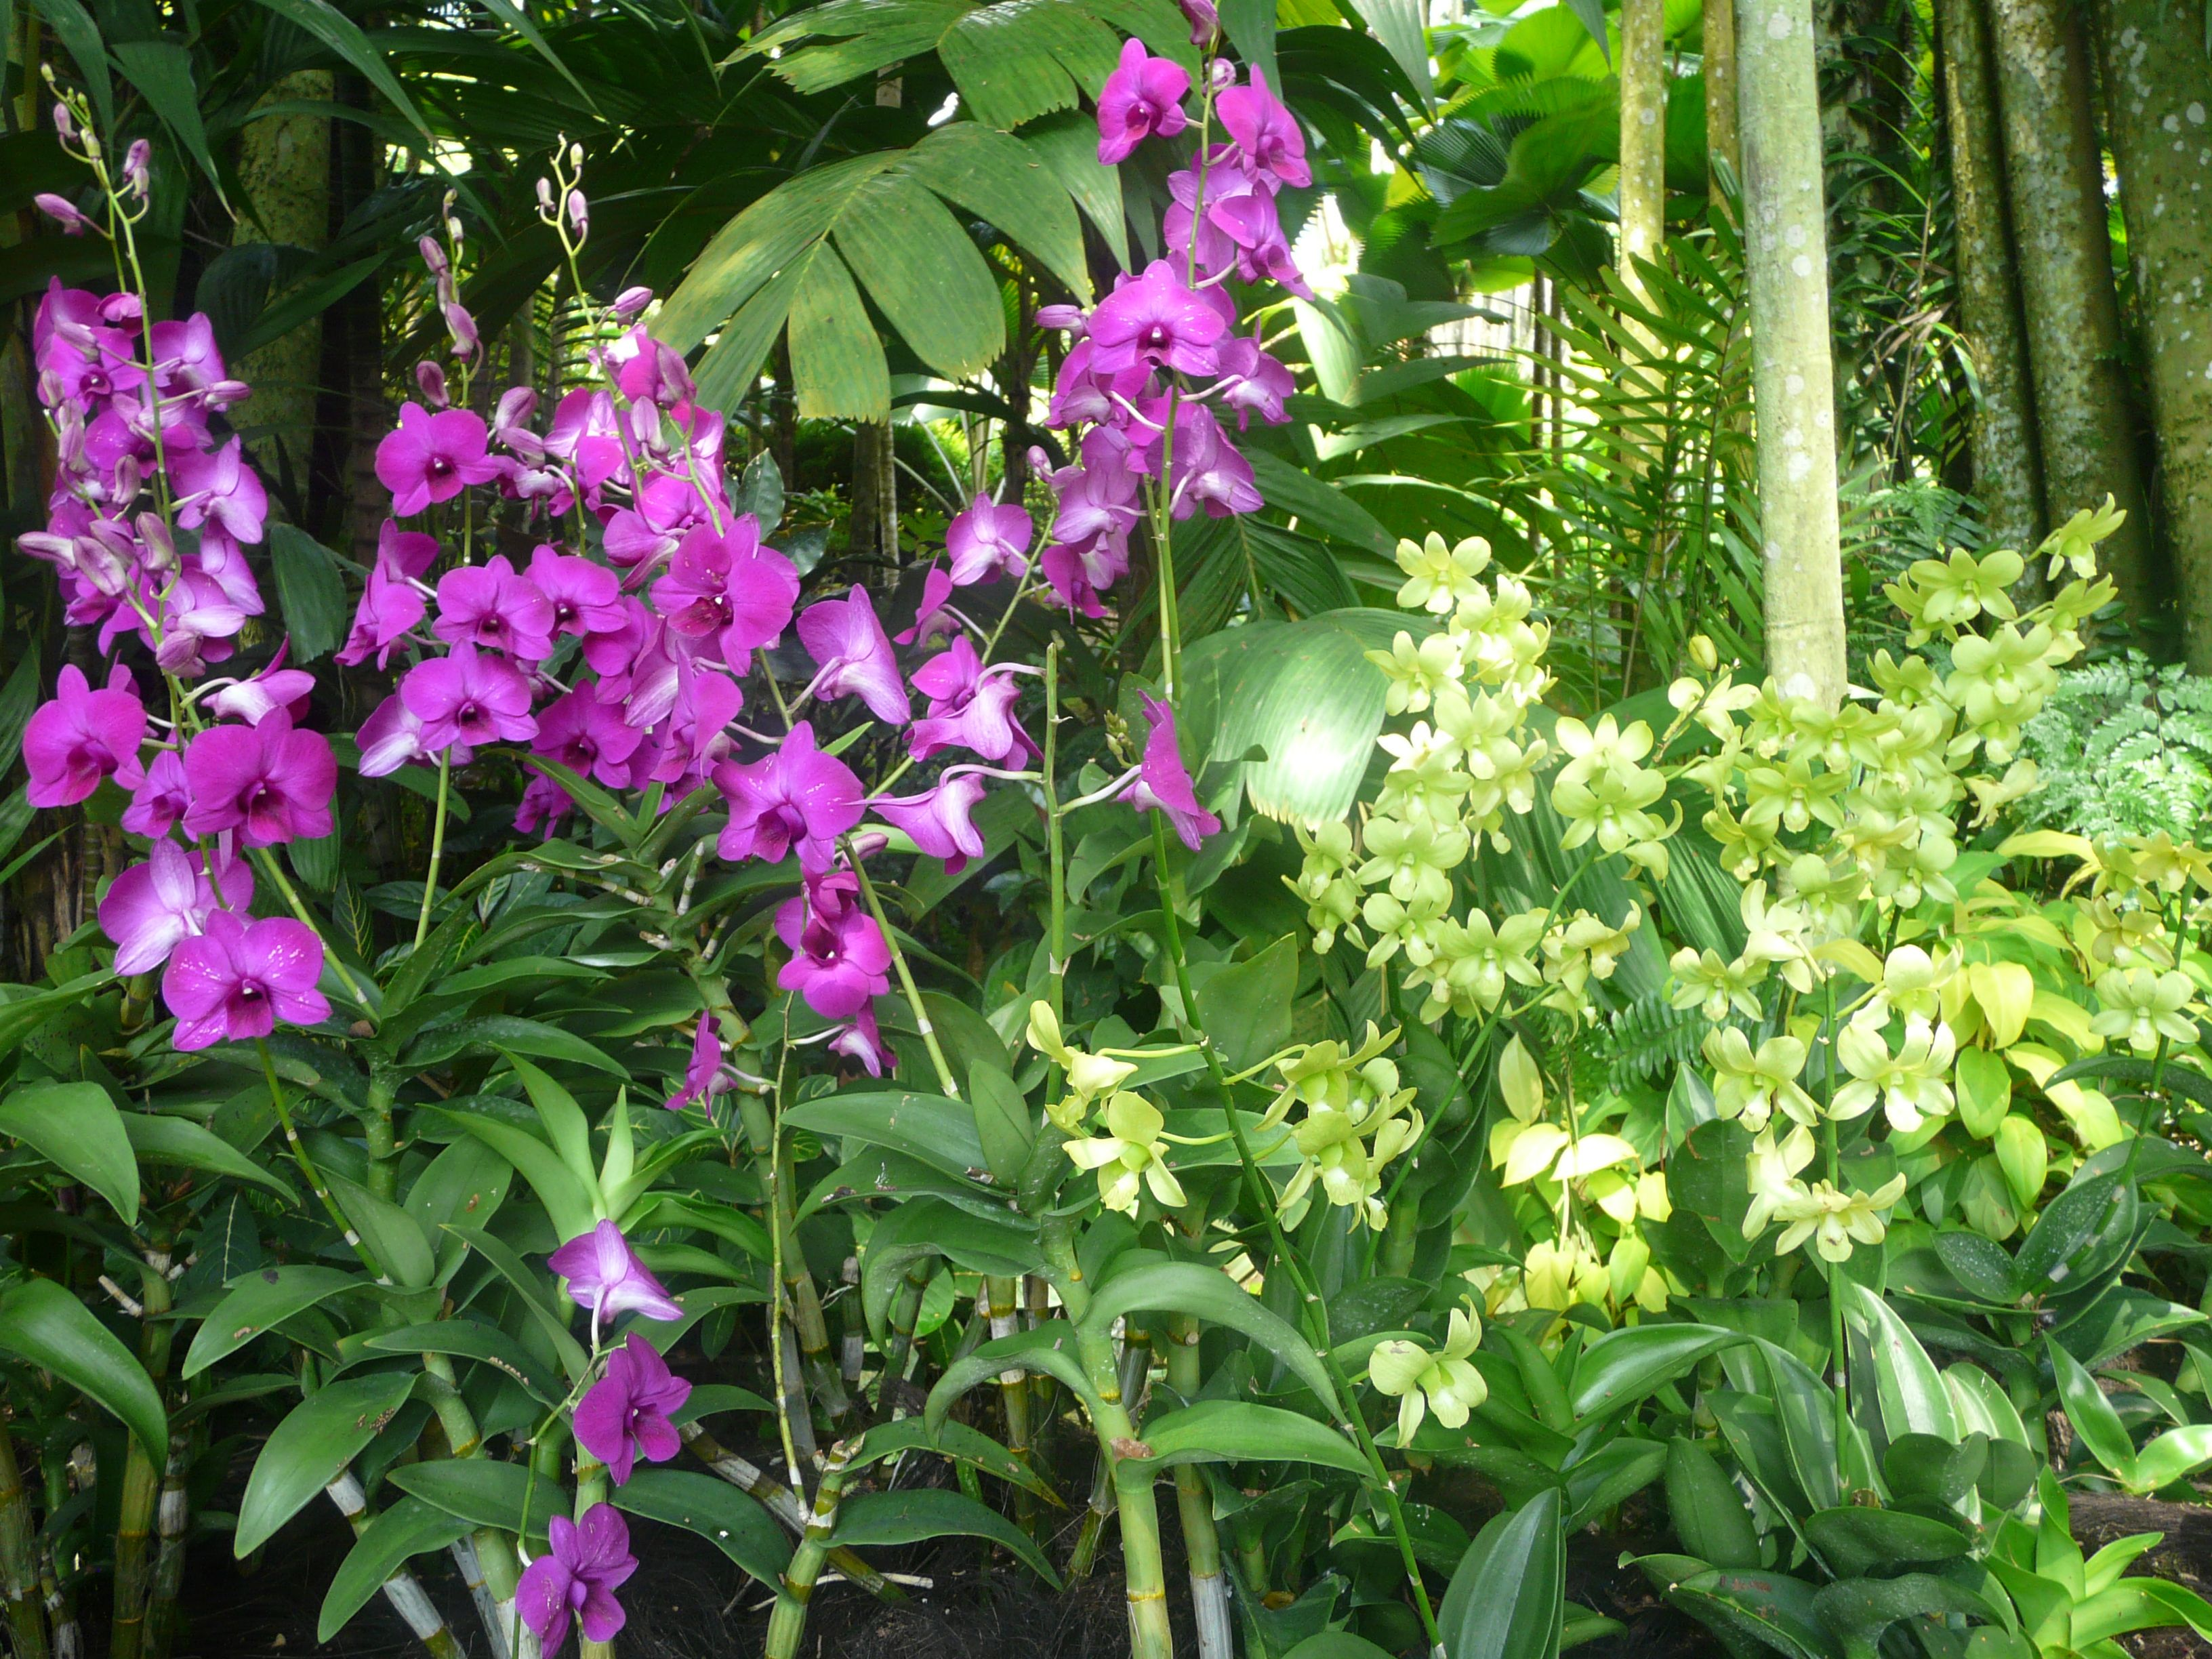 purple and pale green orchids at the national orchid garden